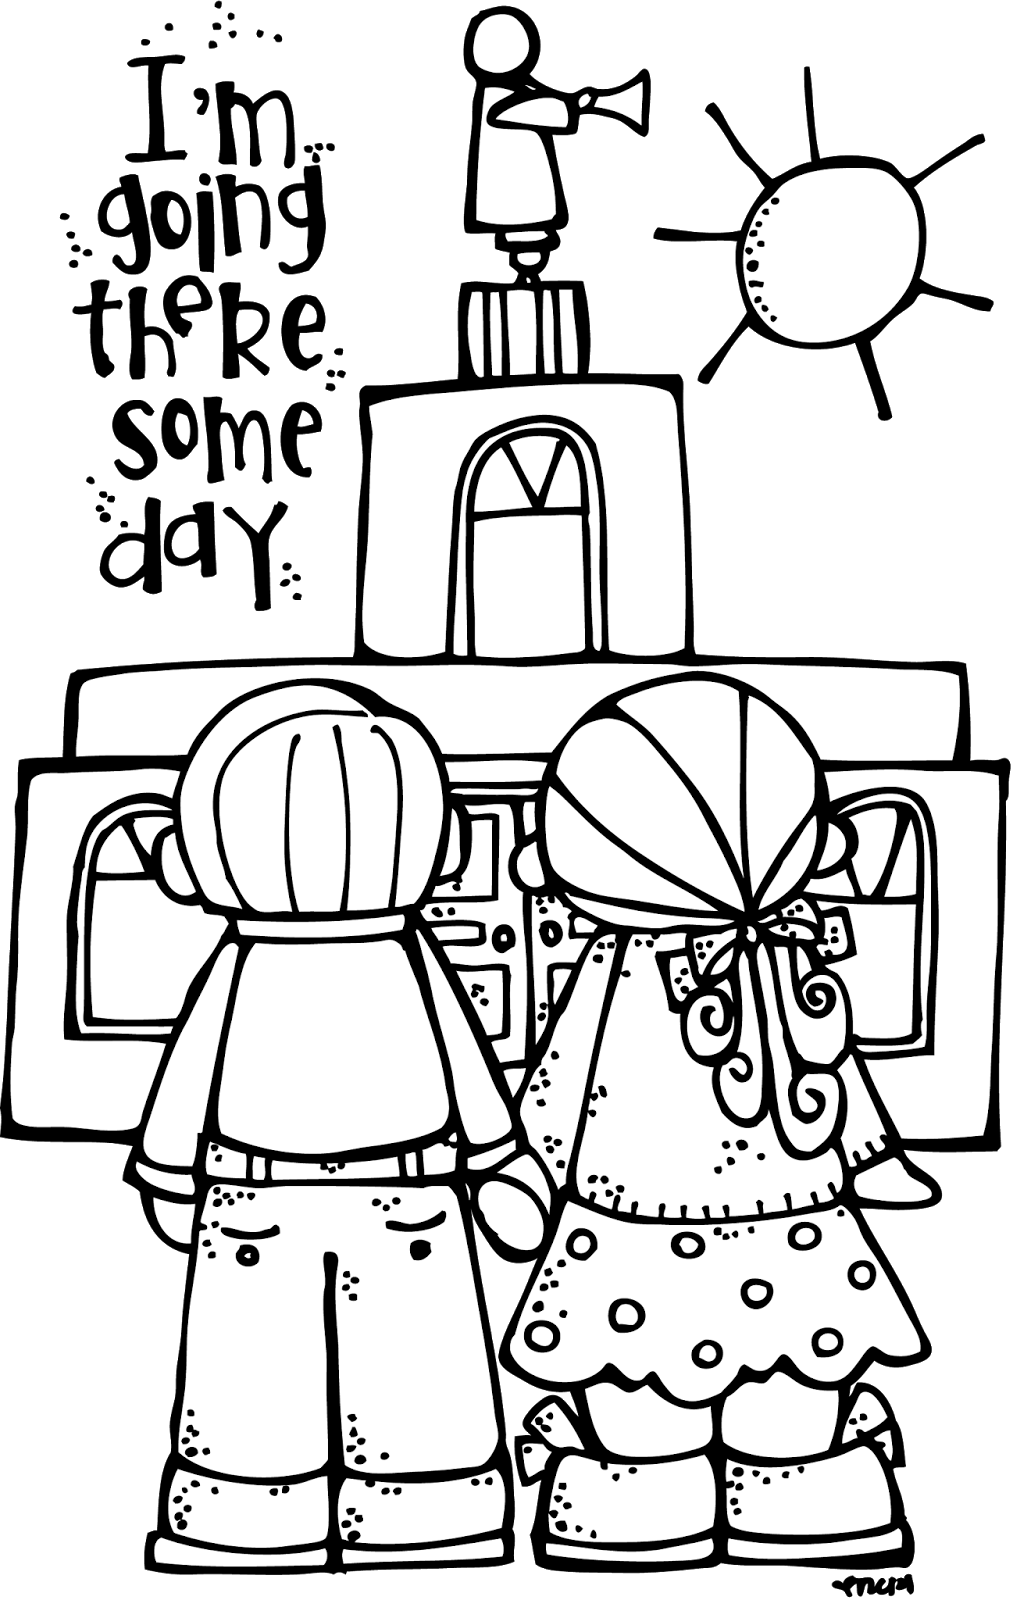 jpg freeuse download . Wednesday clipart church activity